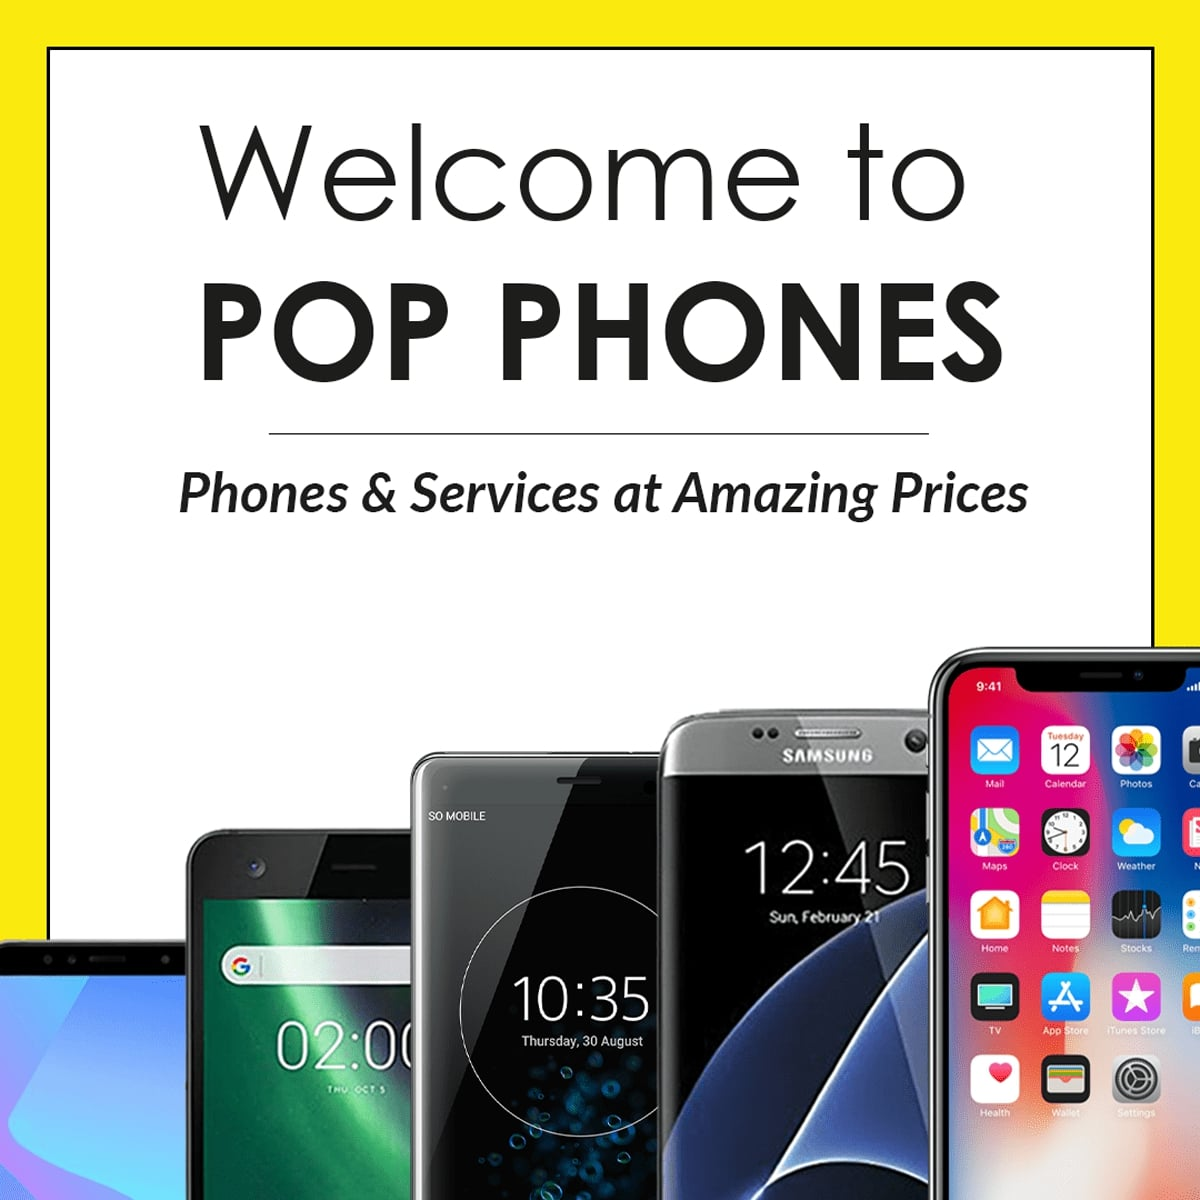 Pre Owned Phones Near Me | free Classified | Free Advertising | free classified ads